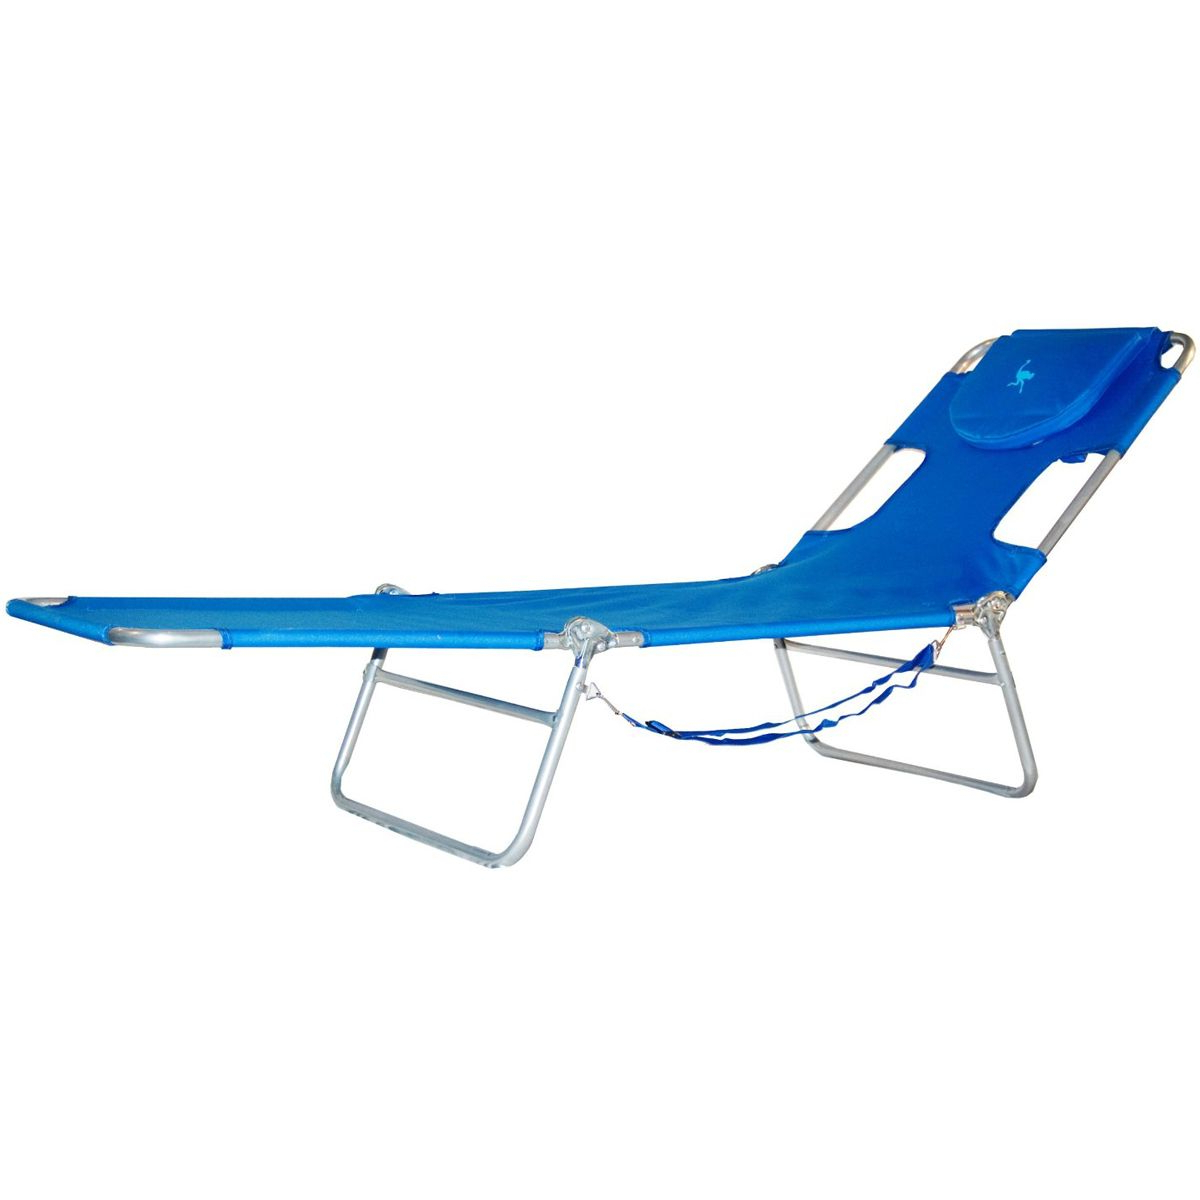 Cheap Beach And For Most Recent 3 Position Portable Folding Reclining Beach Chaise Lounges (View 13 of 25)